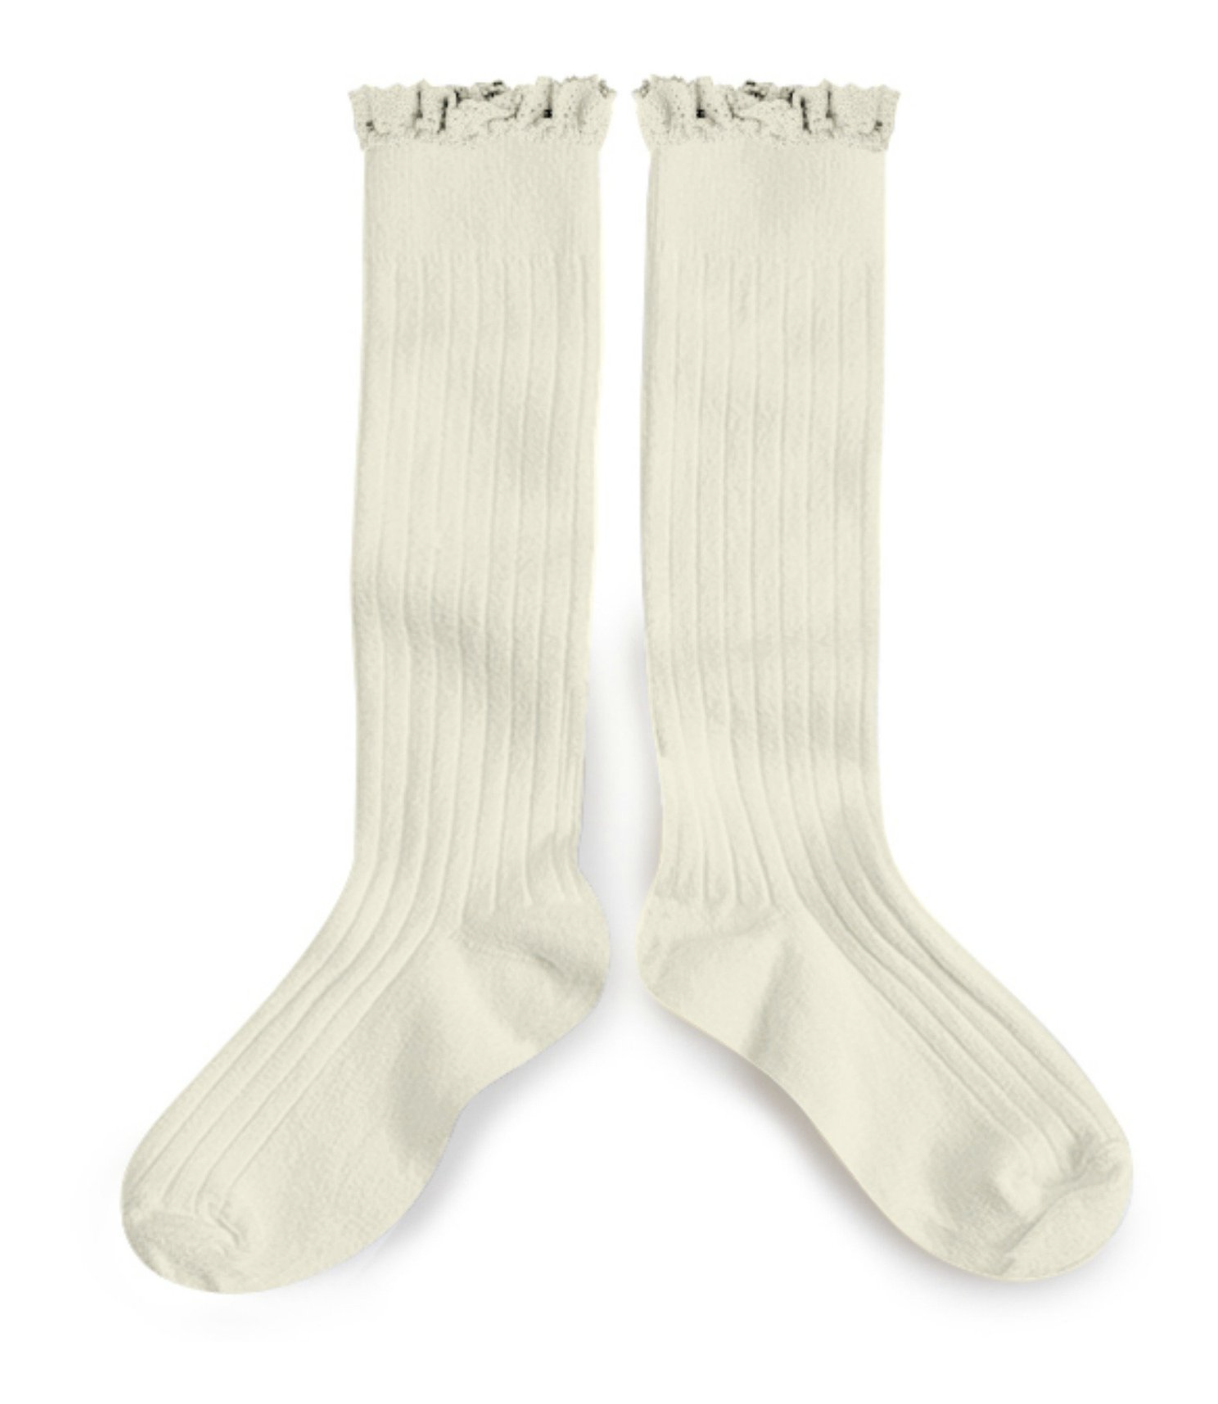 Knee High Socks - We love knee high socks for the cooler spring days. These have precious ruffle and ribbing details that make these a stand out.